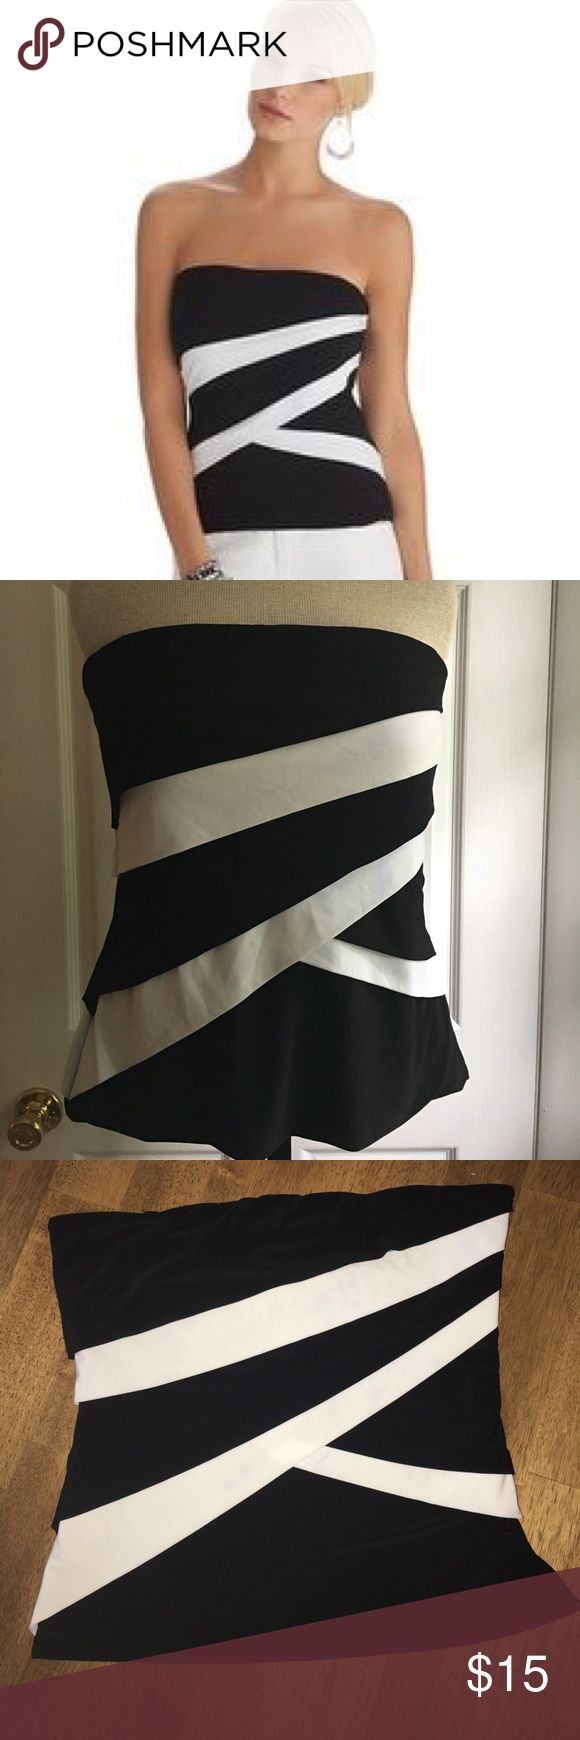 """White House black market black & white tube top White House black market black and white striped tube top, fully lined with stay strip to help hold in place, no straps, side zip with hook closure, 17"""" across bust, 15"""" at waist and 17"""" across hem, 17""""in length. Excellent condition. White House Black Market Tops"""